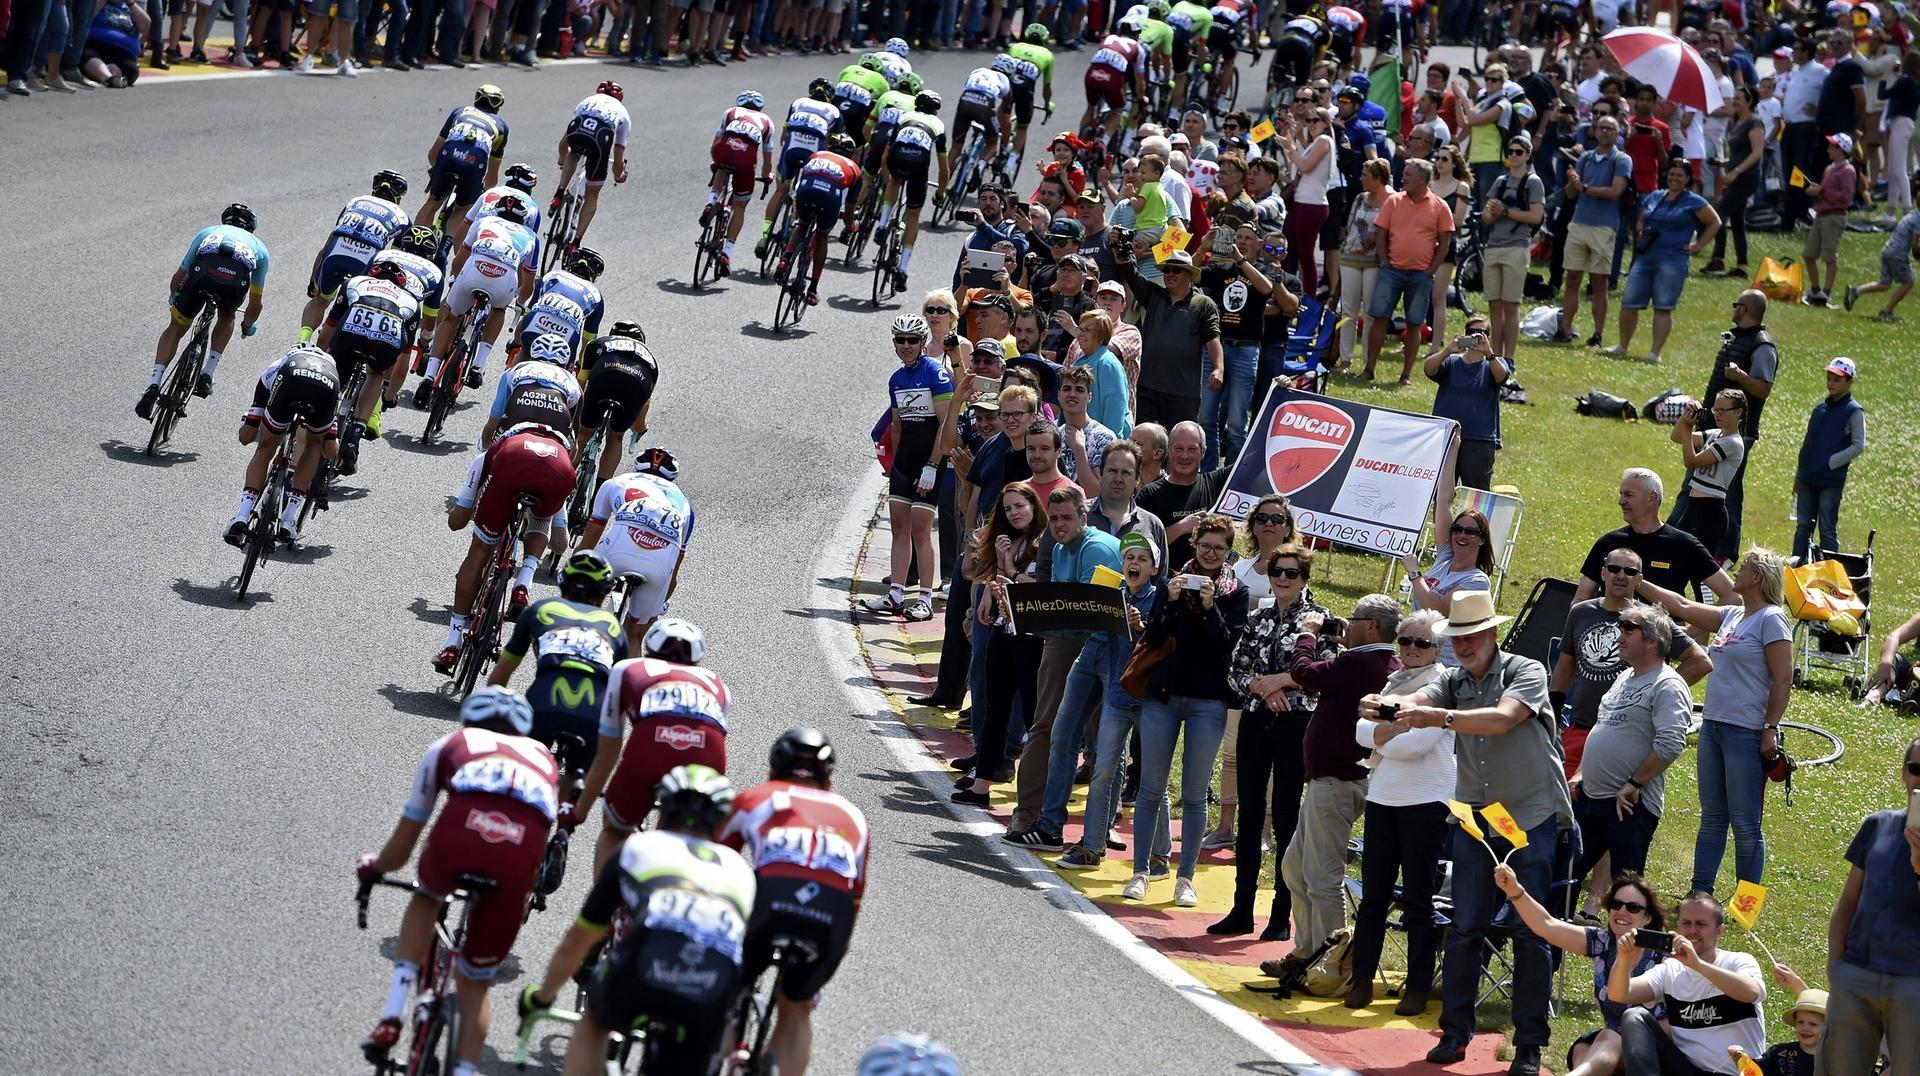 21. Etappe: Montgeron - Paris: Tour de France im Live-Ticker. LONGWY LUXEMBOURG JULY 3 Illustration picture of the peloton passing on the famous race circuit (Quelle: Photo News Panoramic)